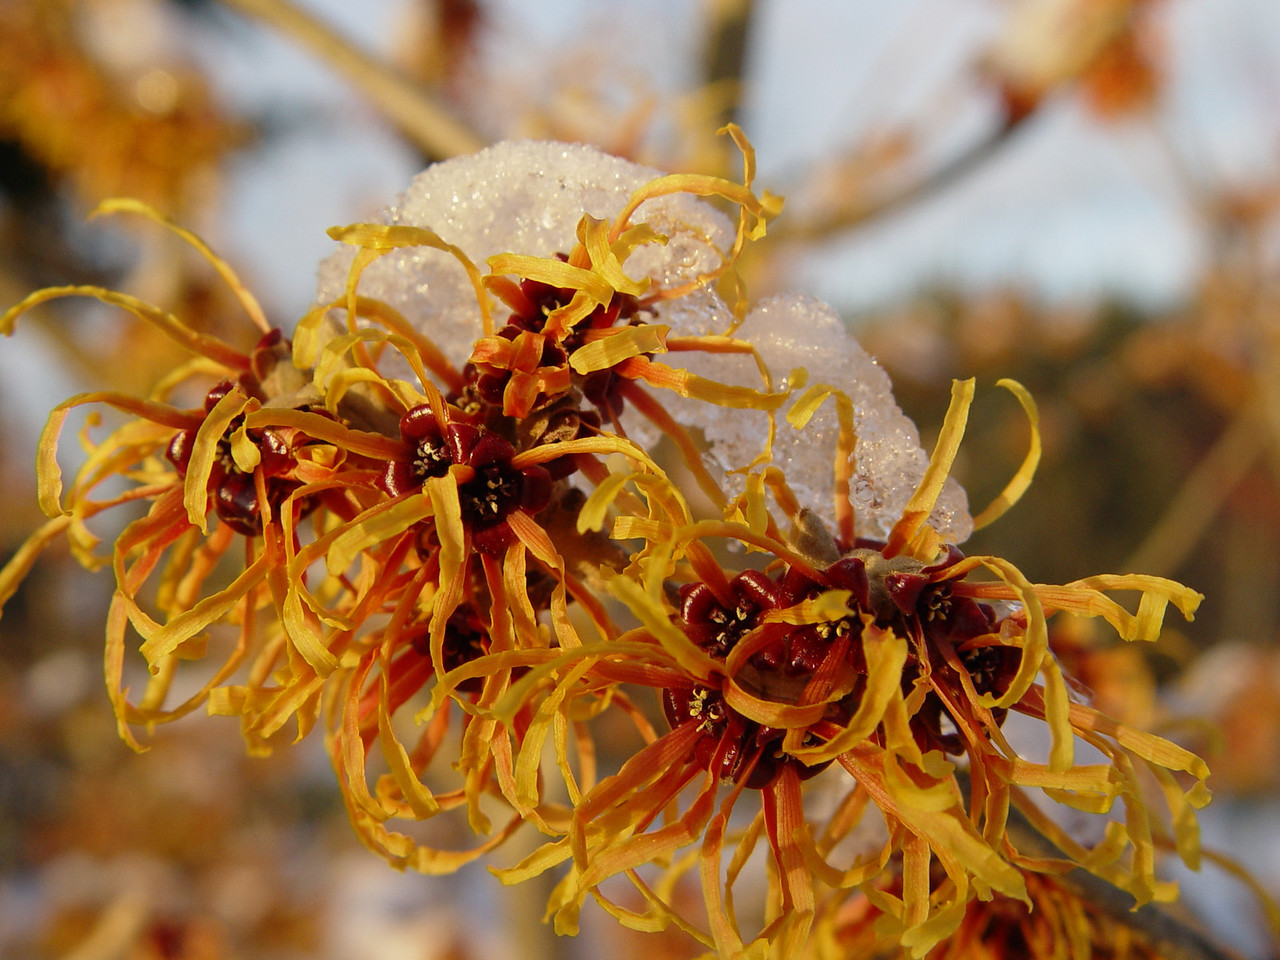 Jelena Witch Hazel Hamamelis x intermedia 'Jelena' Garden Photo January 25th 2009